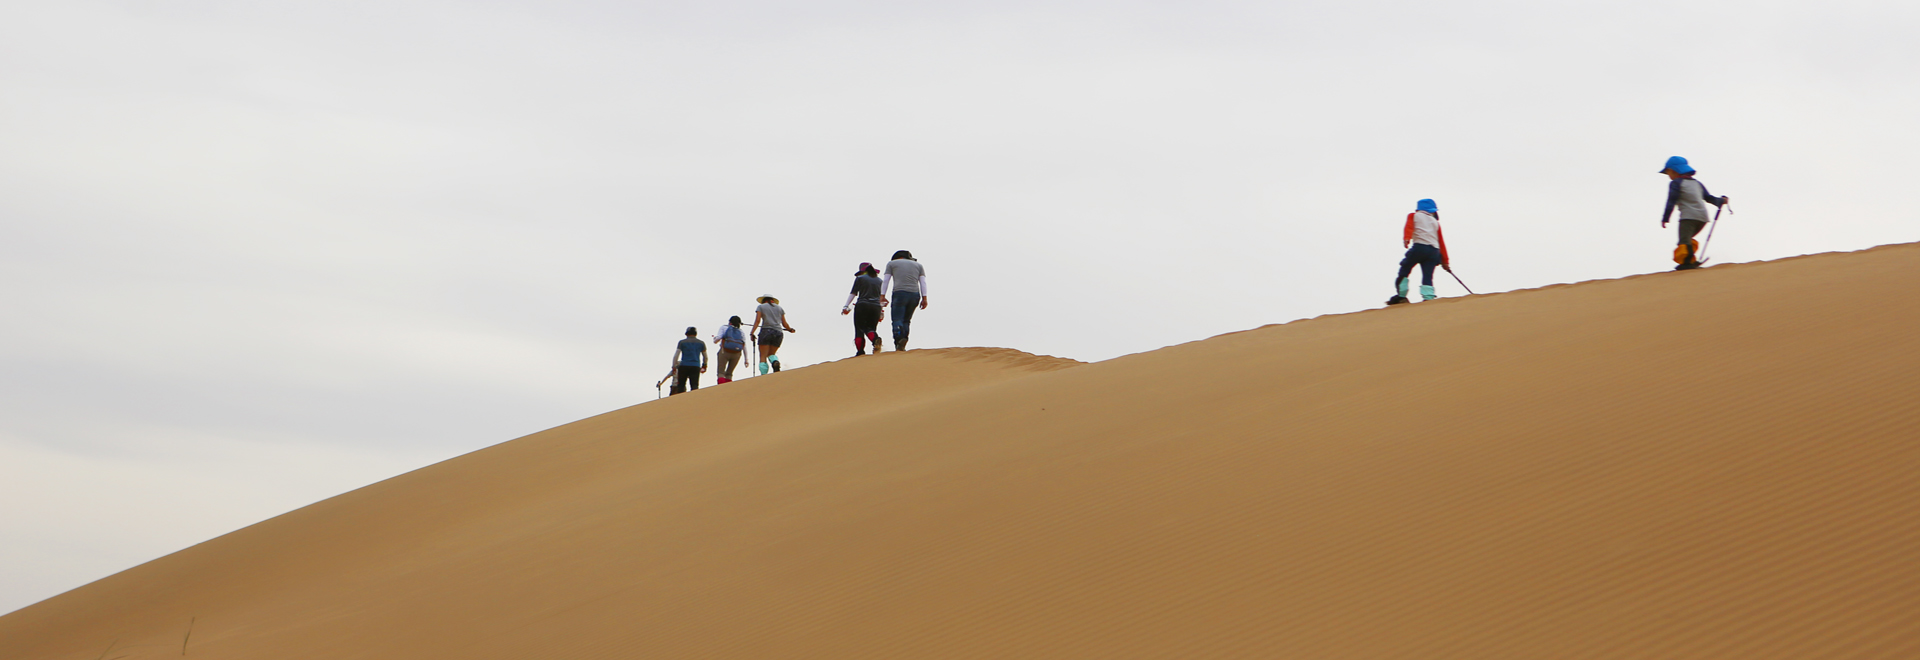 Camel Riding In Mongolian Desert And Jeep Surfing Sand Dunes